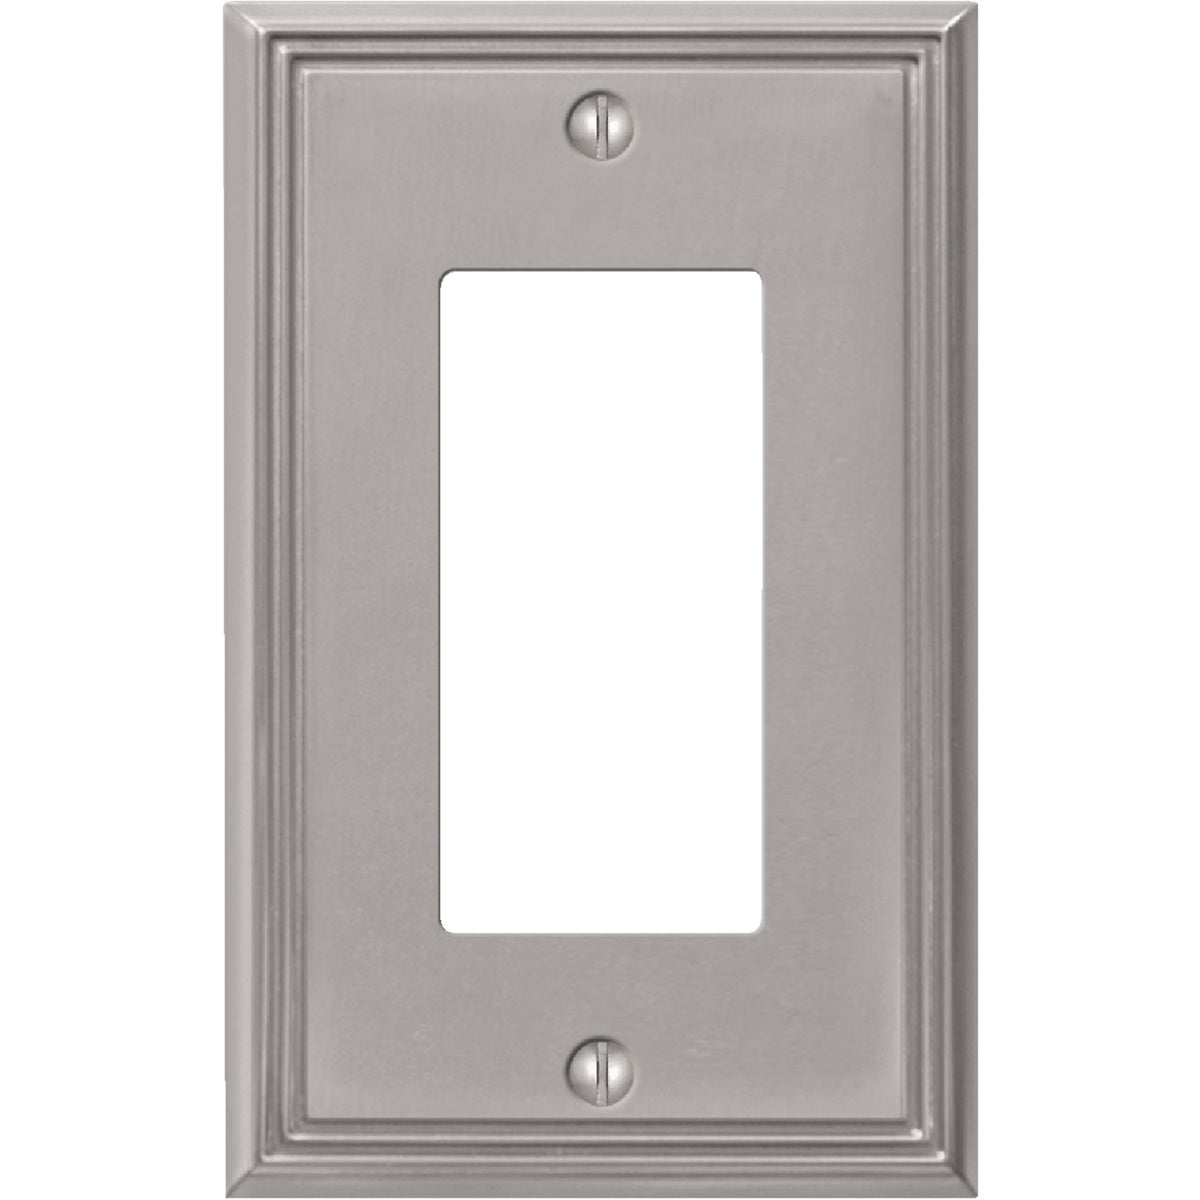 BN GFI WALLPLATE - 3117BN by Jackson Deerfield Mf